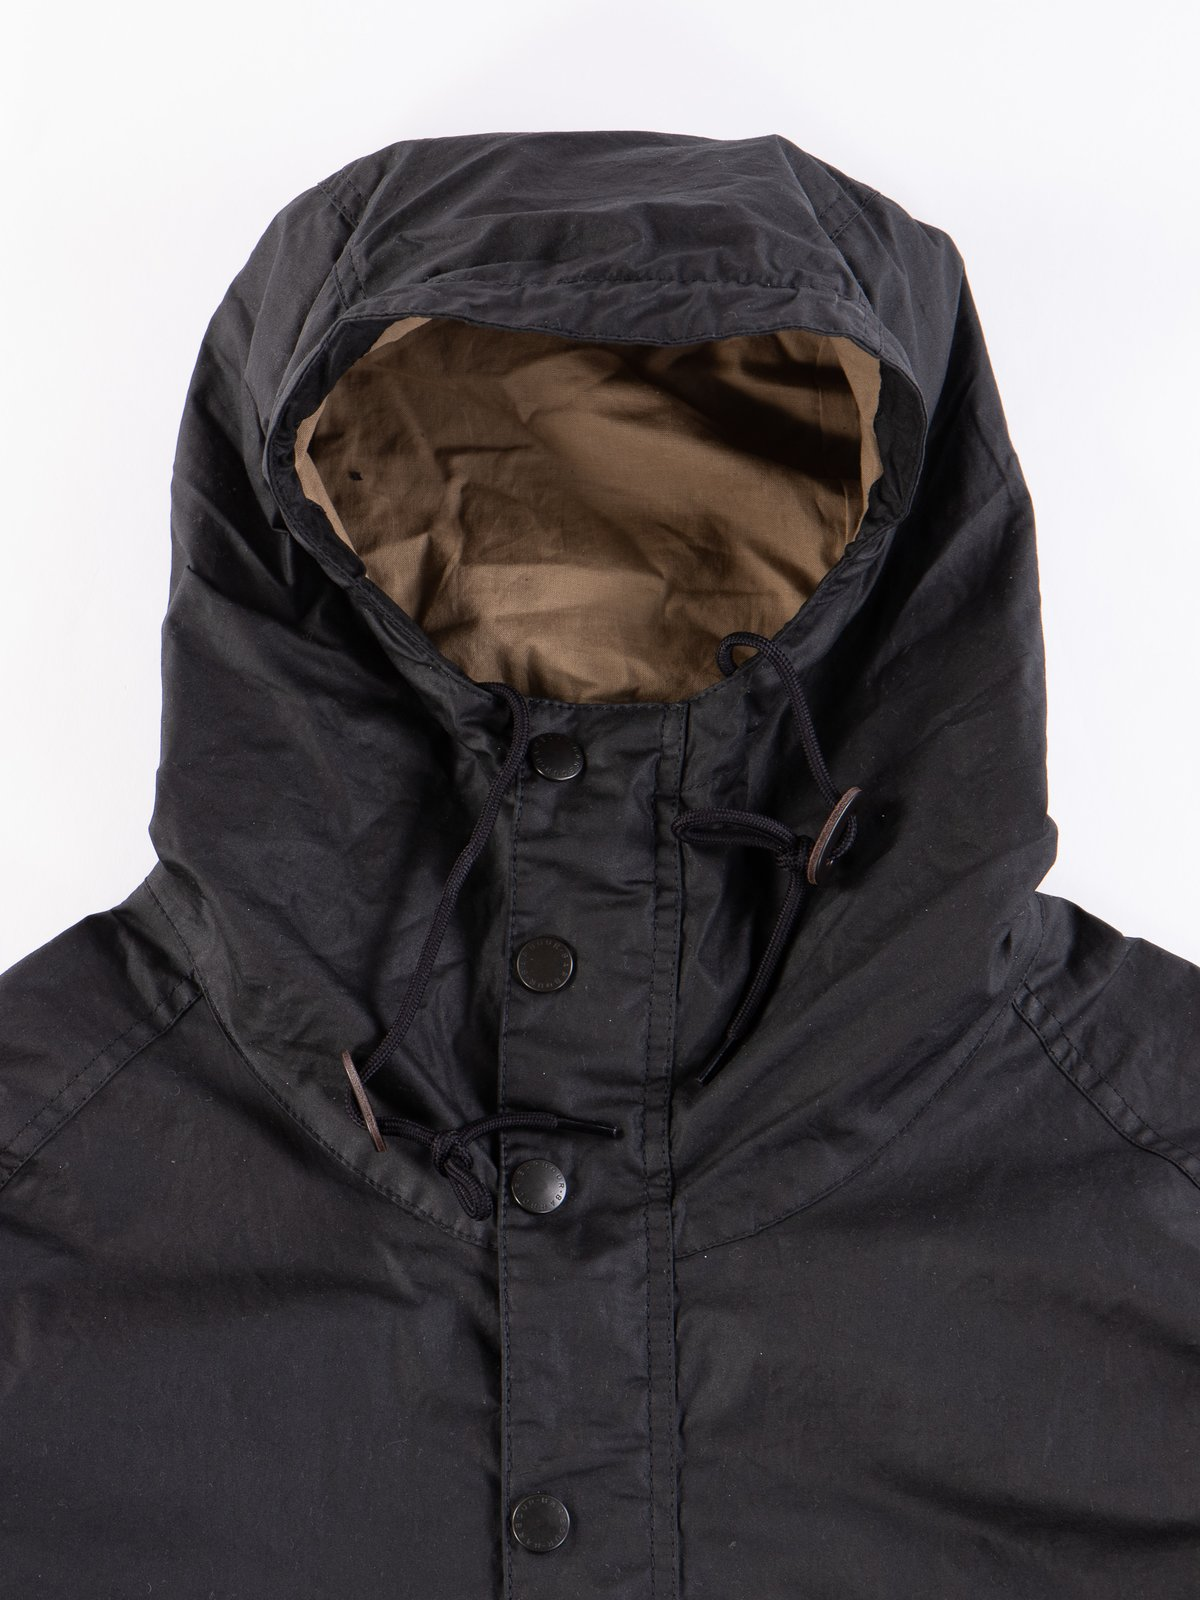 Black Hiking Waxed Cotton Jacket - Image 3